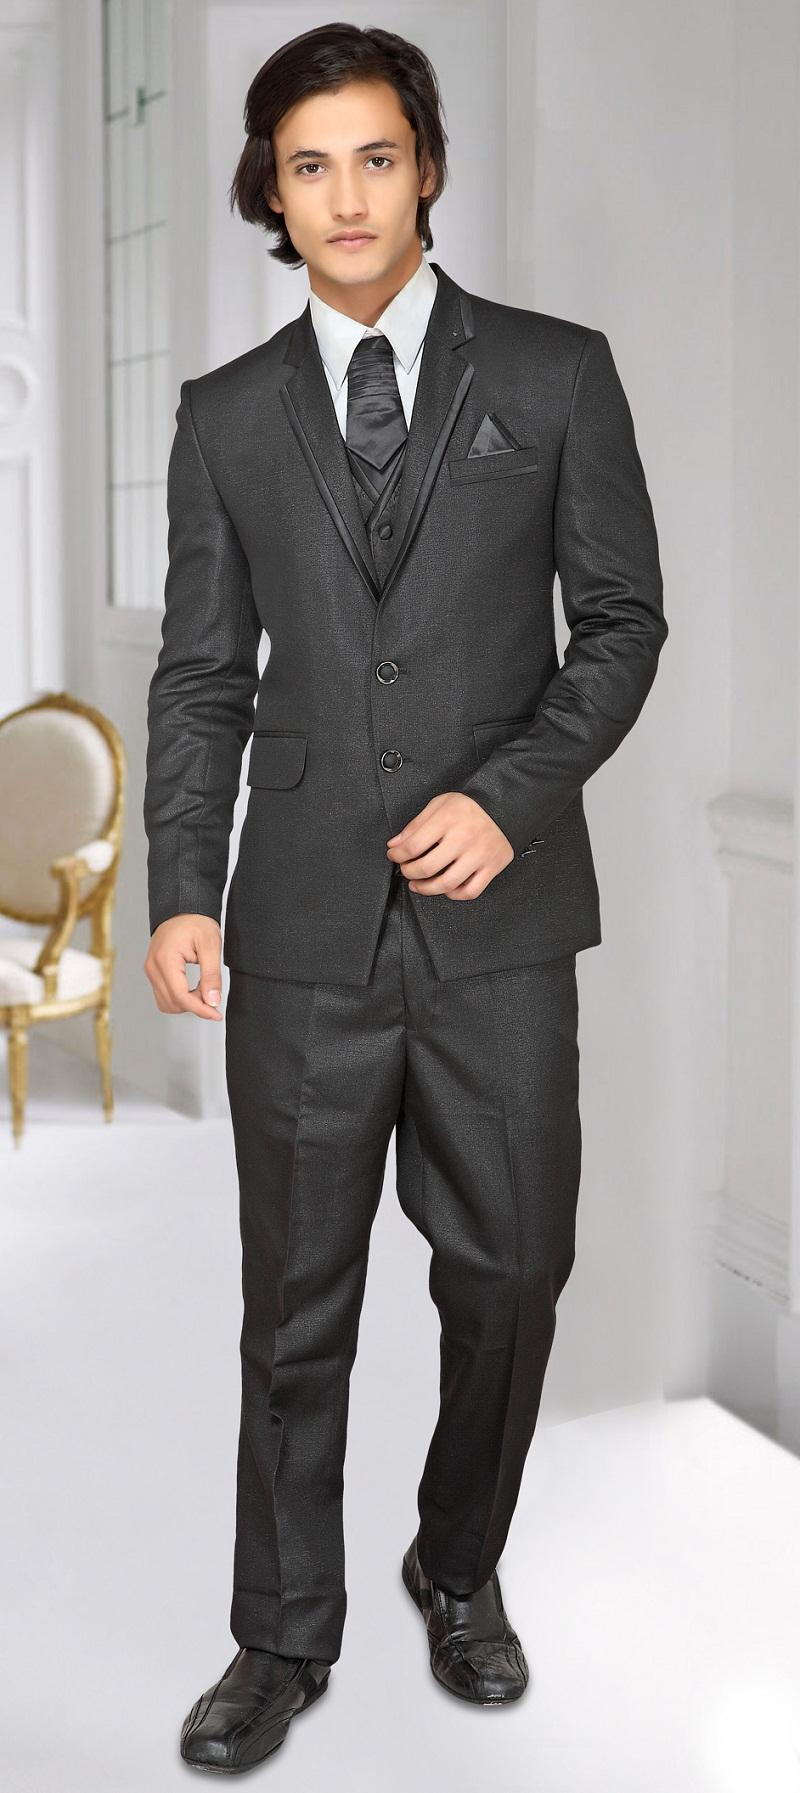 Fashion Notched Lapel Tuxedos Men Suits Dark Grey Wedding Suits ...